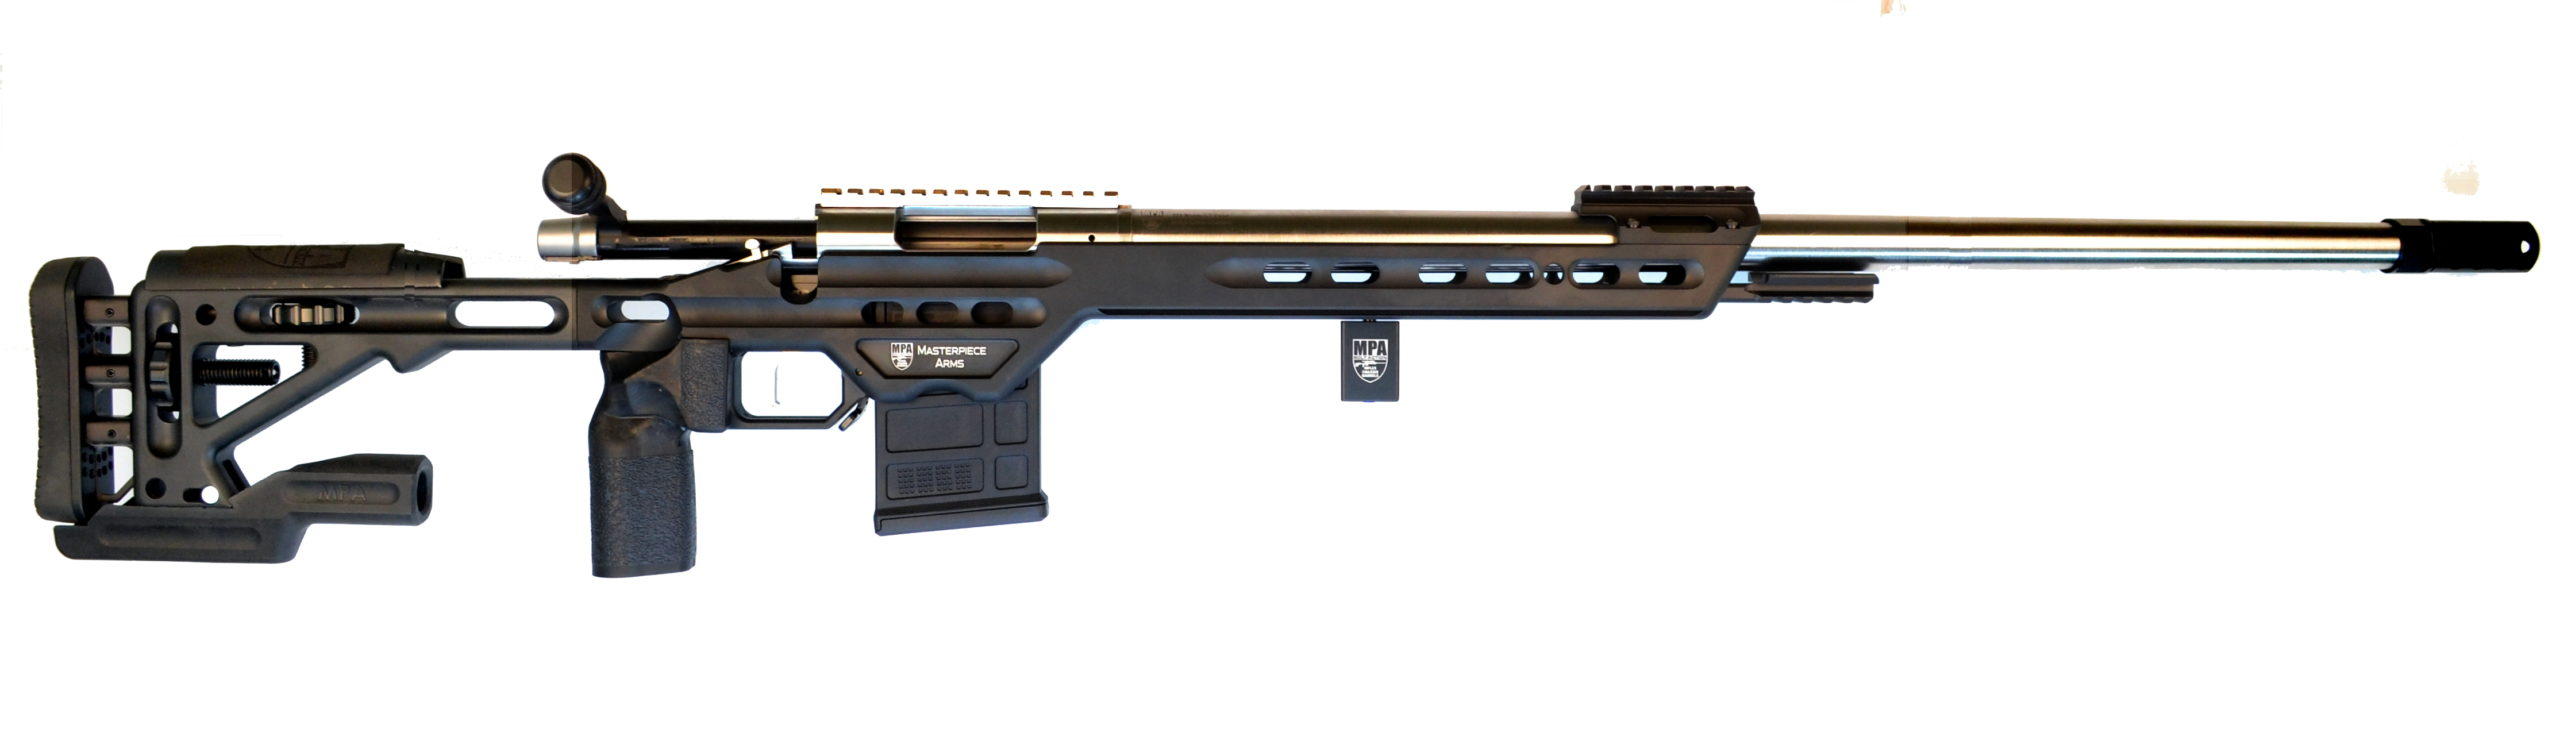 "MasterPiece Arms (MPA) Introduces the MPA BA Precision Match Rifle (PMR) ""Pro"" Competition Rifle for the 2020 Precision Rifle Series (PRS) Season"